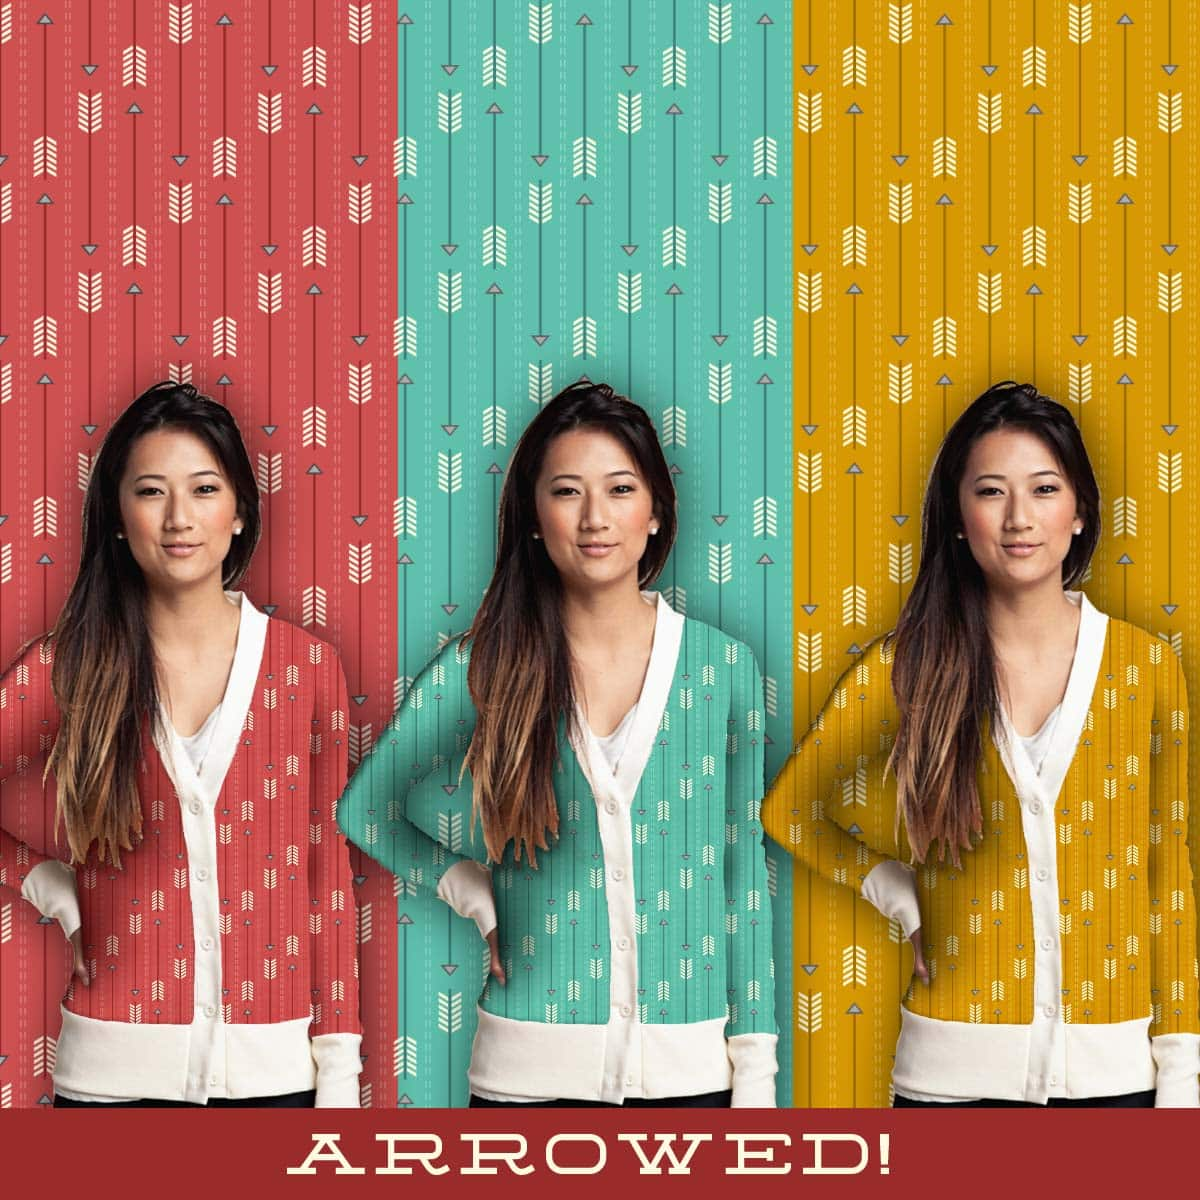 Arrowed!!! by Kellabell9 on Threadless